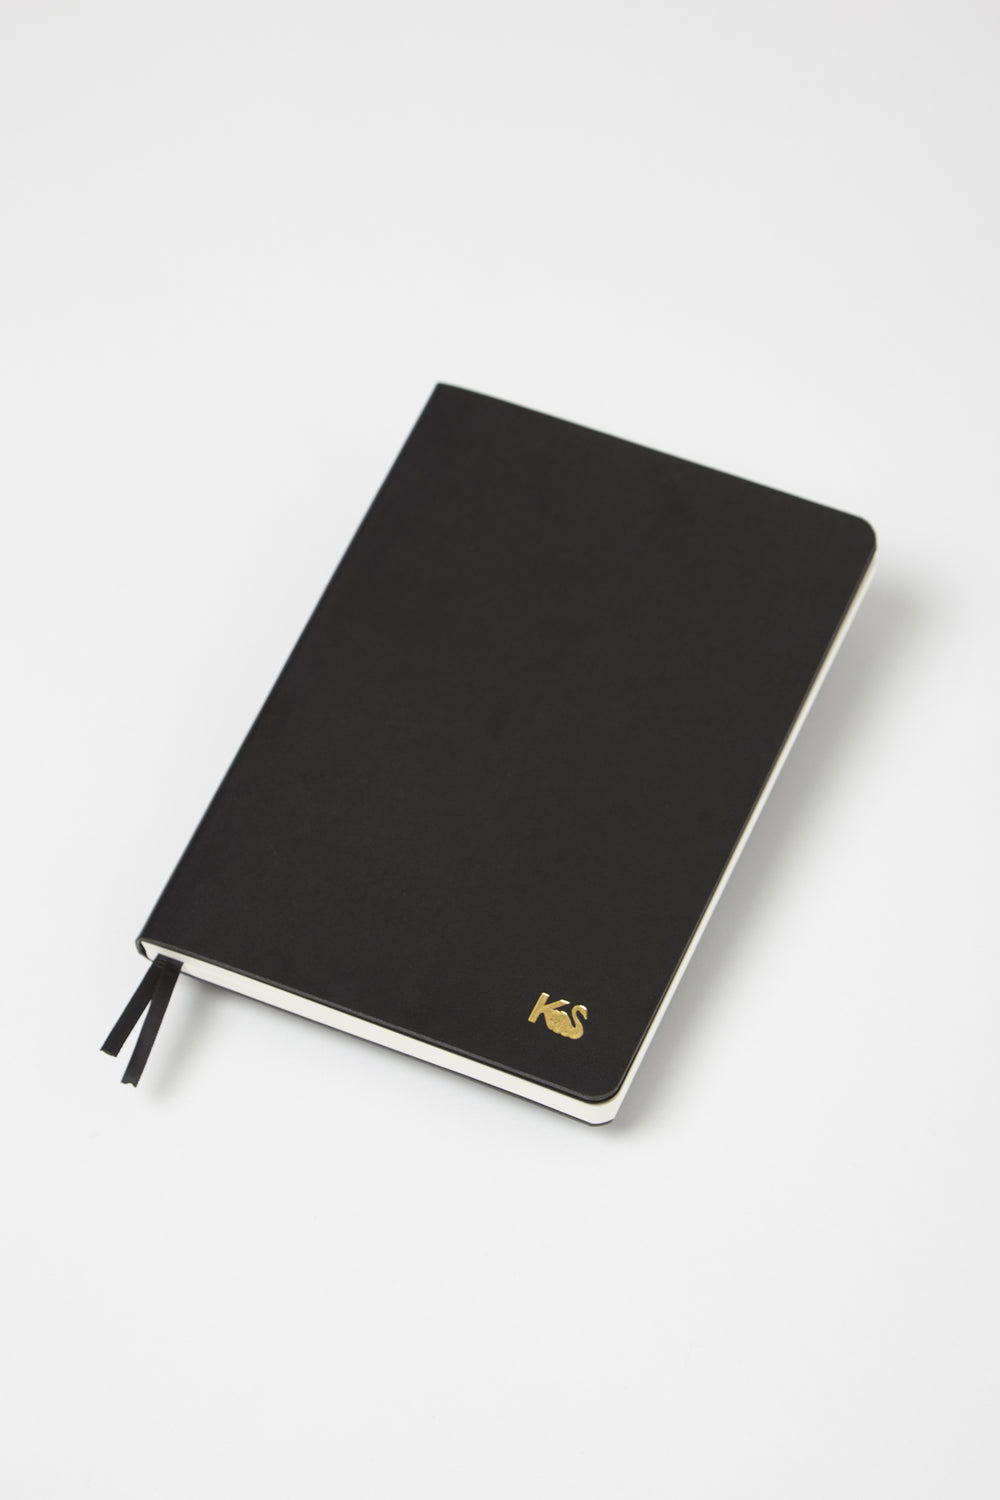 KS Plain Notebook